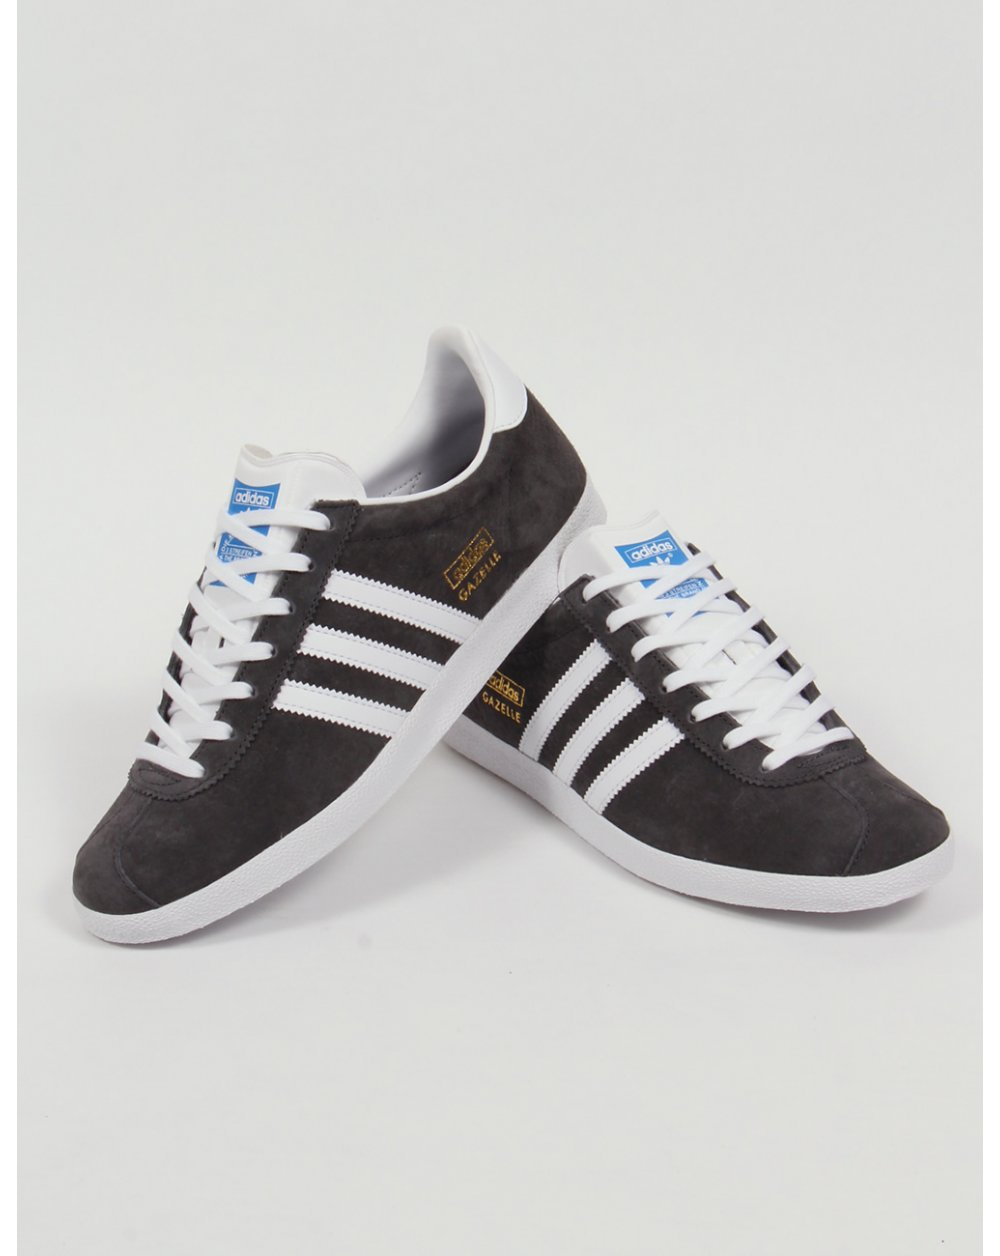 Adidas Gazelle OG Trainers Dark Grey White c29688a0d